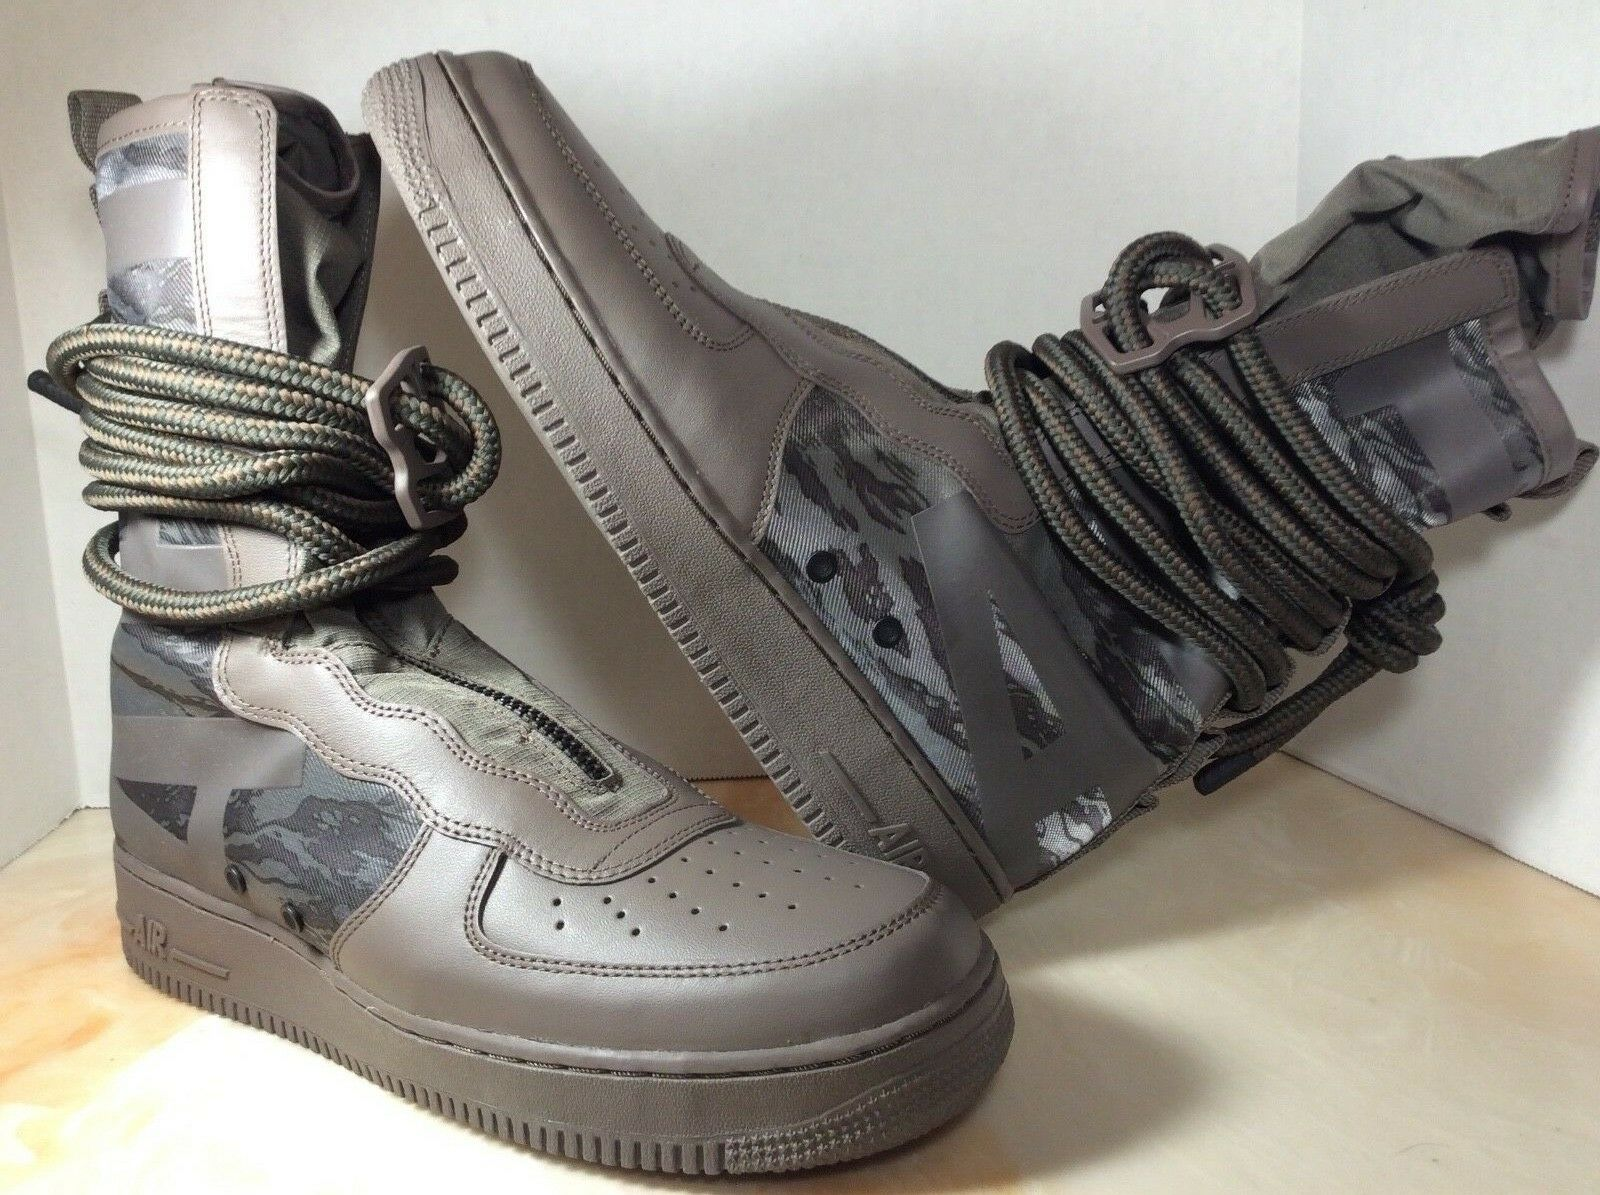 Nike AF1 SF High men size 11.5 Ridgerock Sequoia AA1128-203